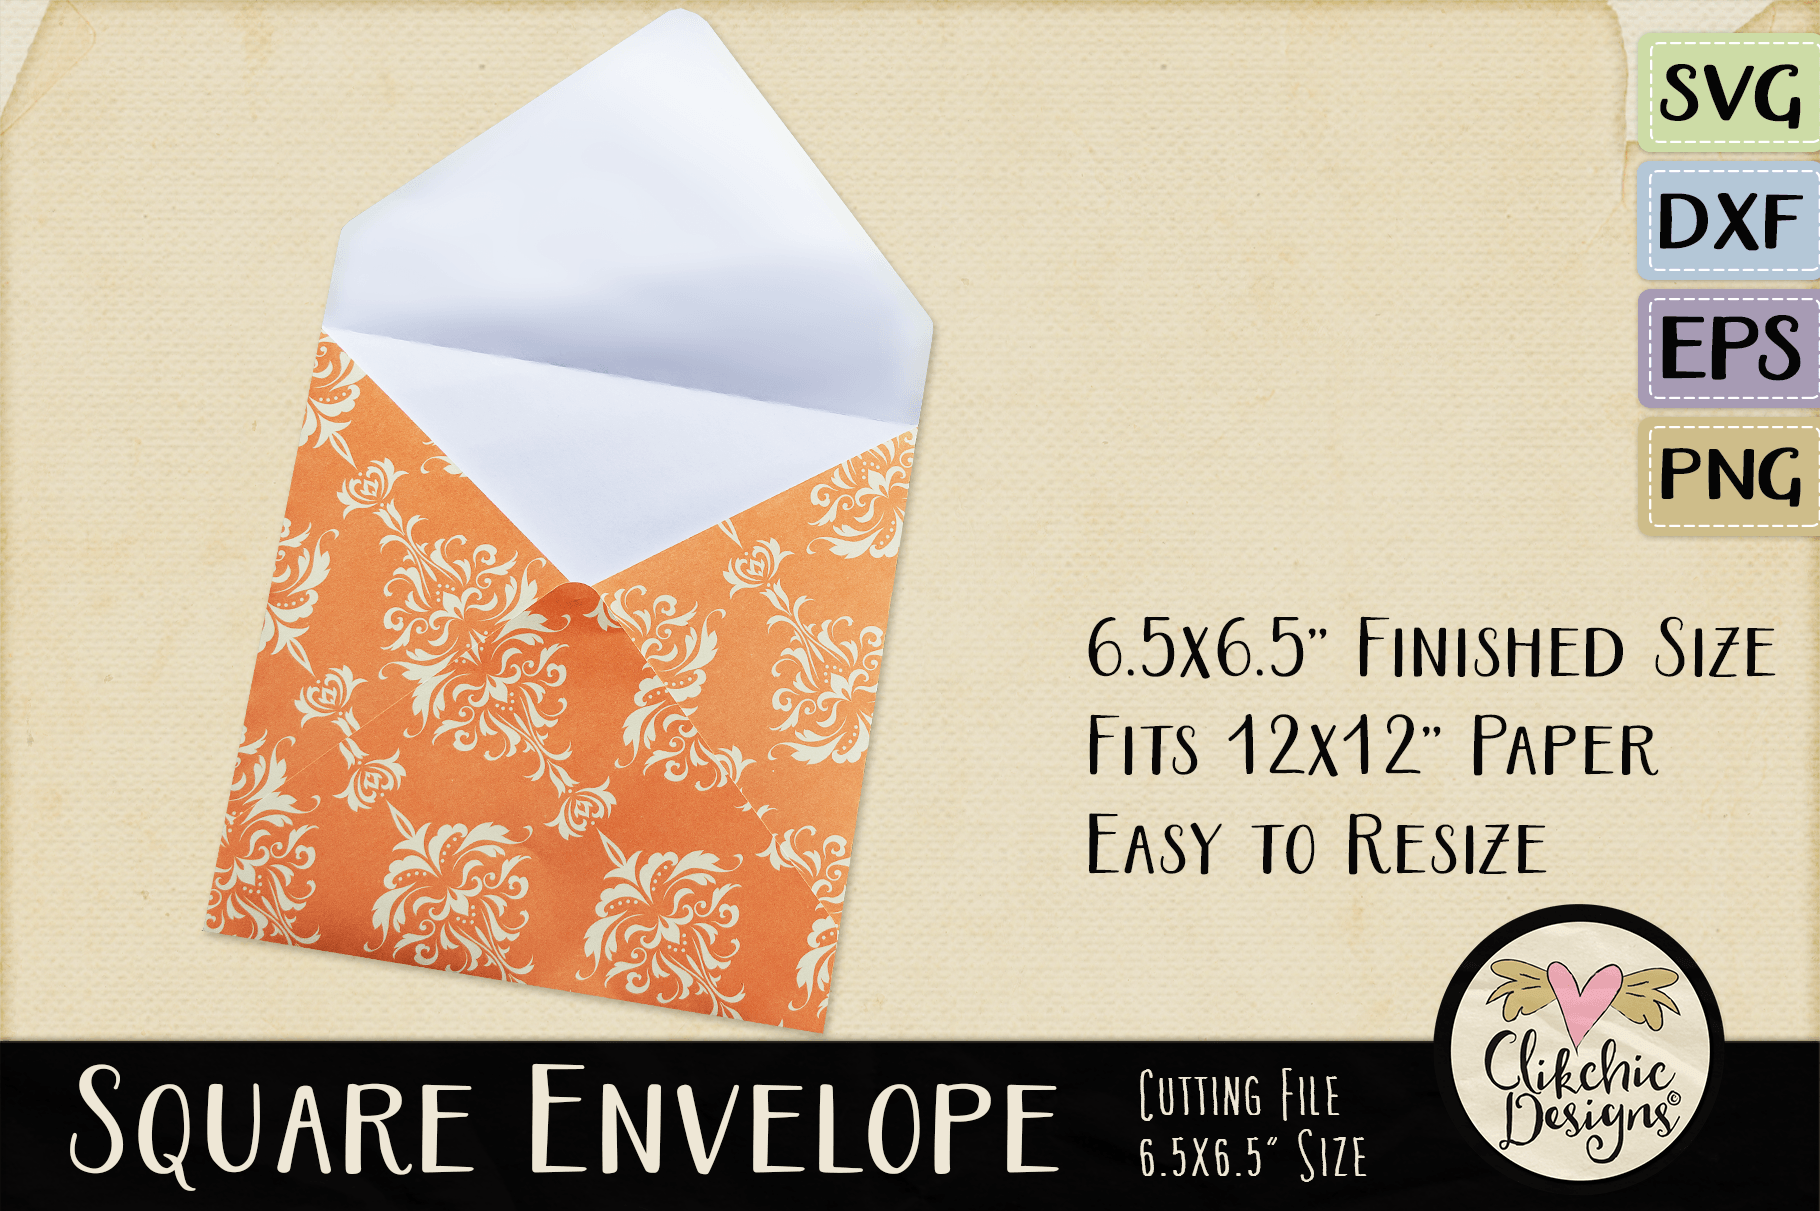 Square Envelope SVG - Square Envelope Cutting File Template example image 2